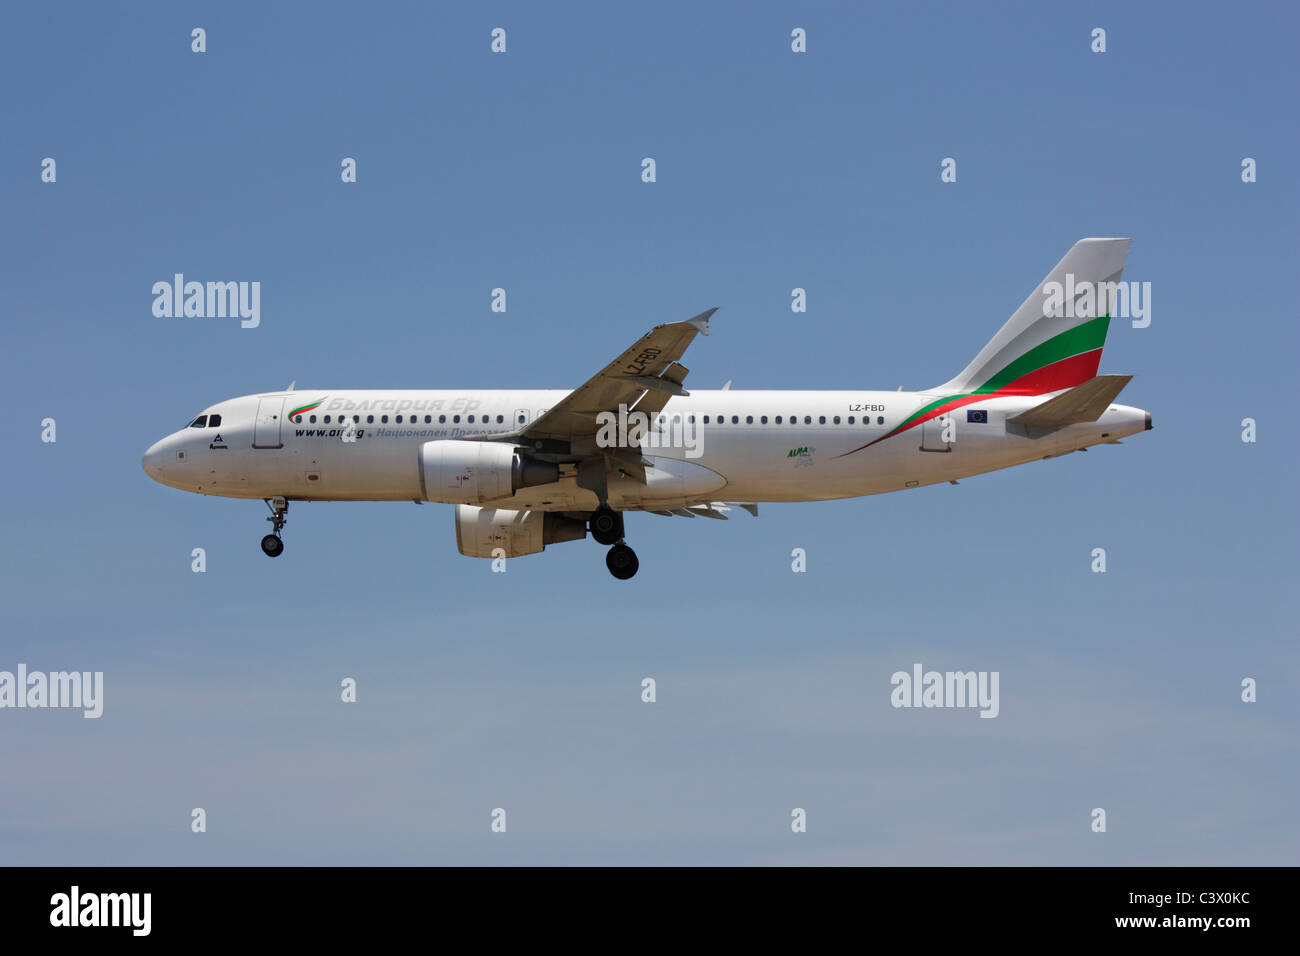 Bulgaria Air Airbus A320 passenger jet airplane on final approach - Stock Image